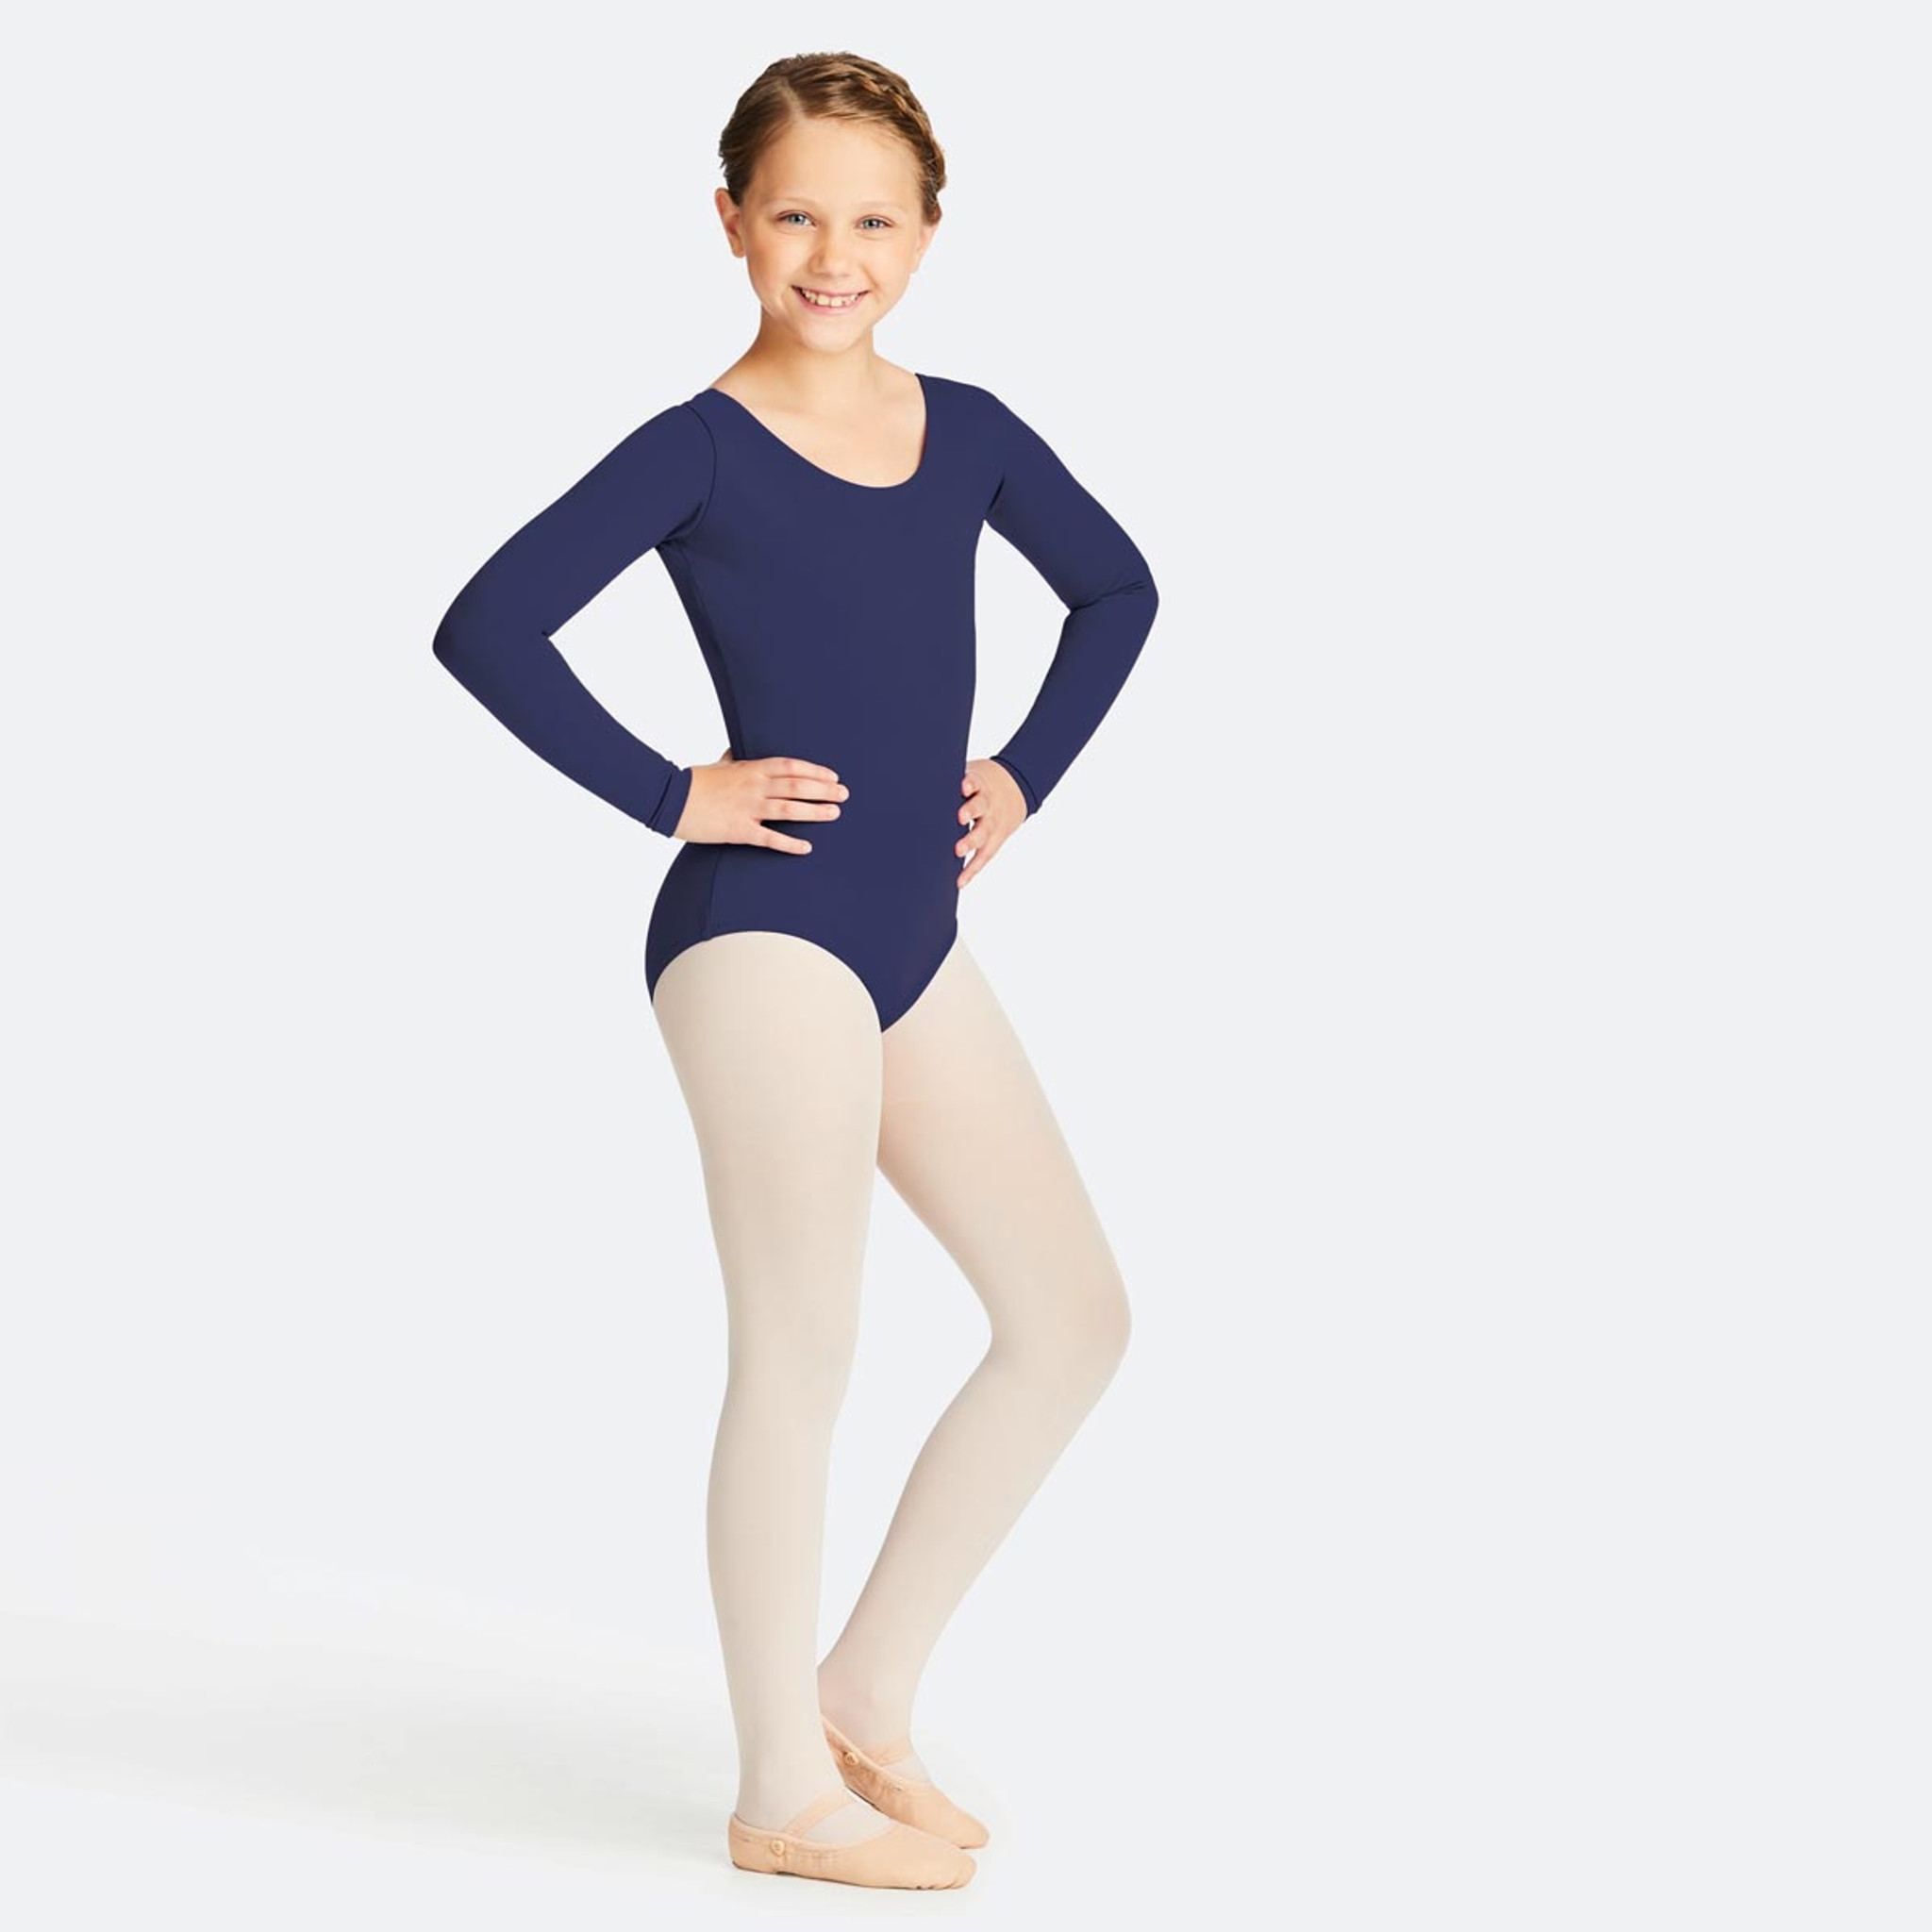 b5656df7d48f3 Capezio Long Sleeve Leotard - Children's Dancewear - DANCE DIRECT®